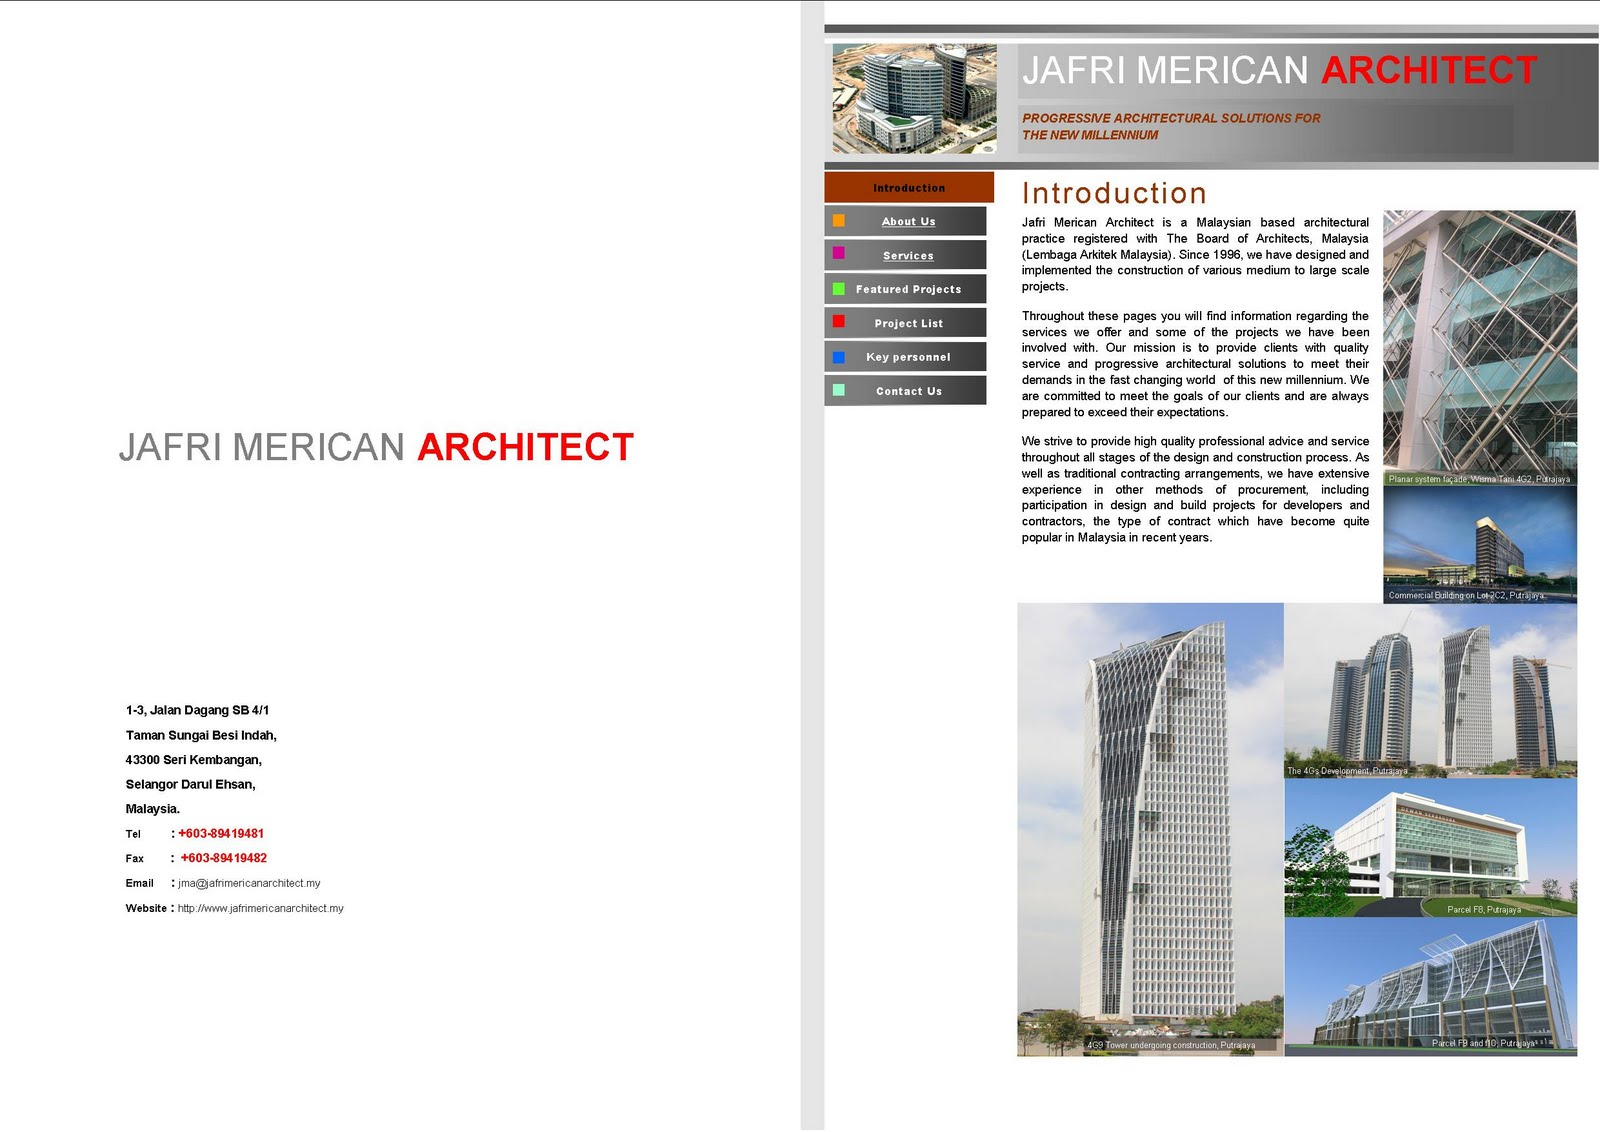 architects cv inspirenow jafri merican architect cv introductionjafri merican architect is a n based architectural practice registered the board